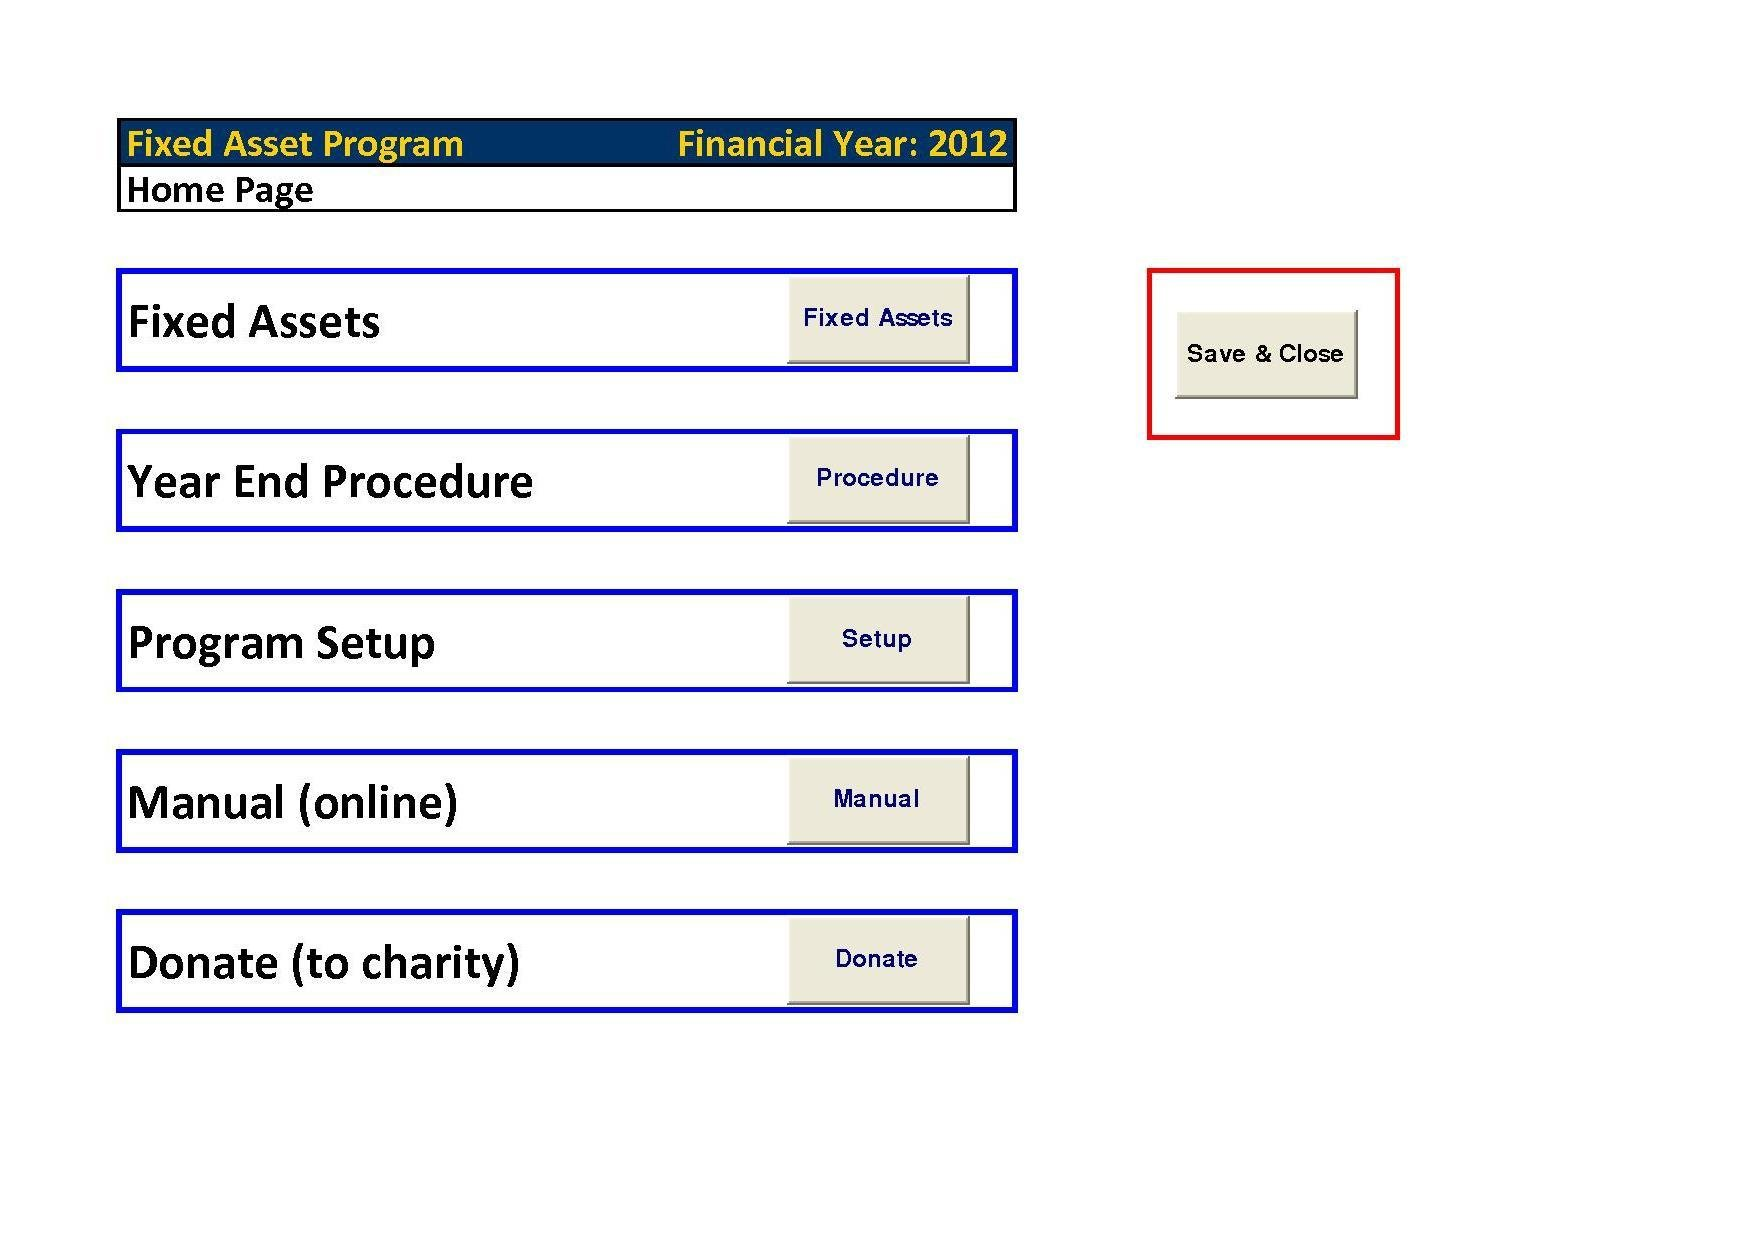 Fixed Assets Pro Excel Download